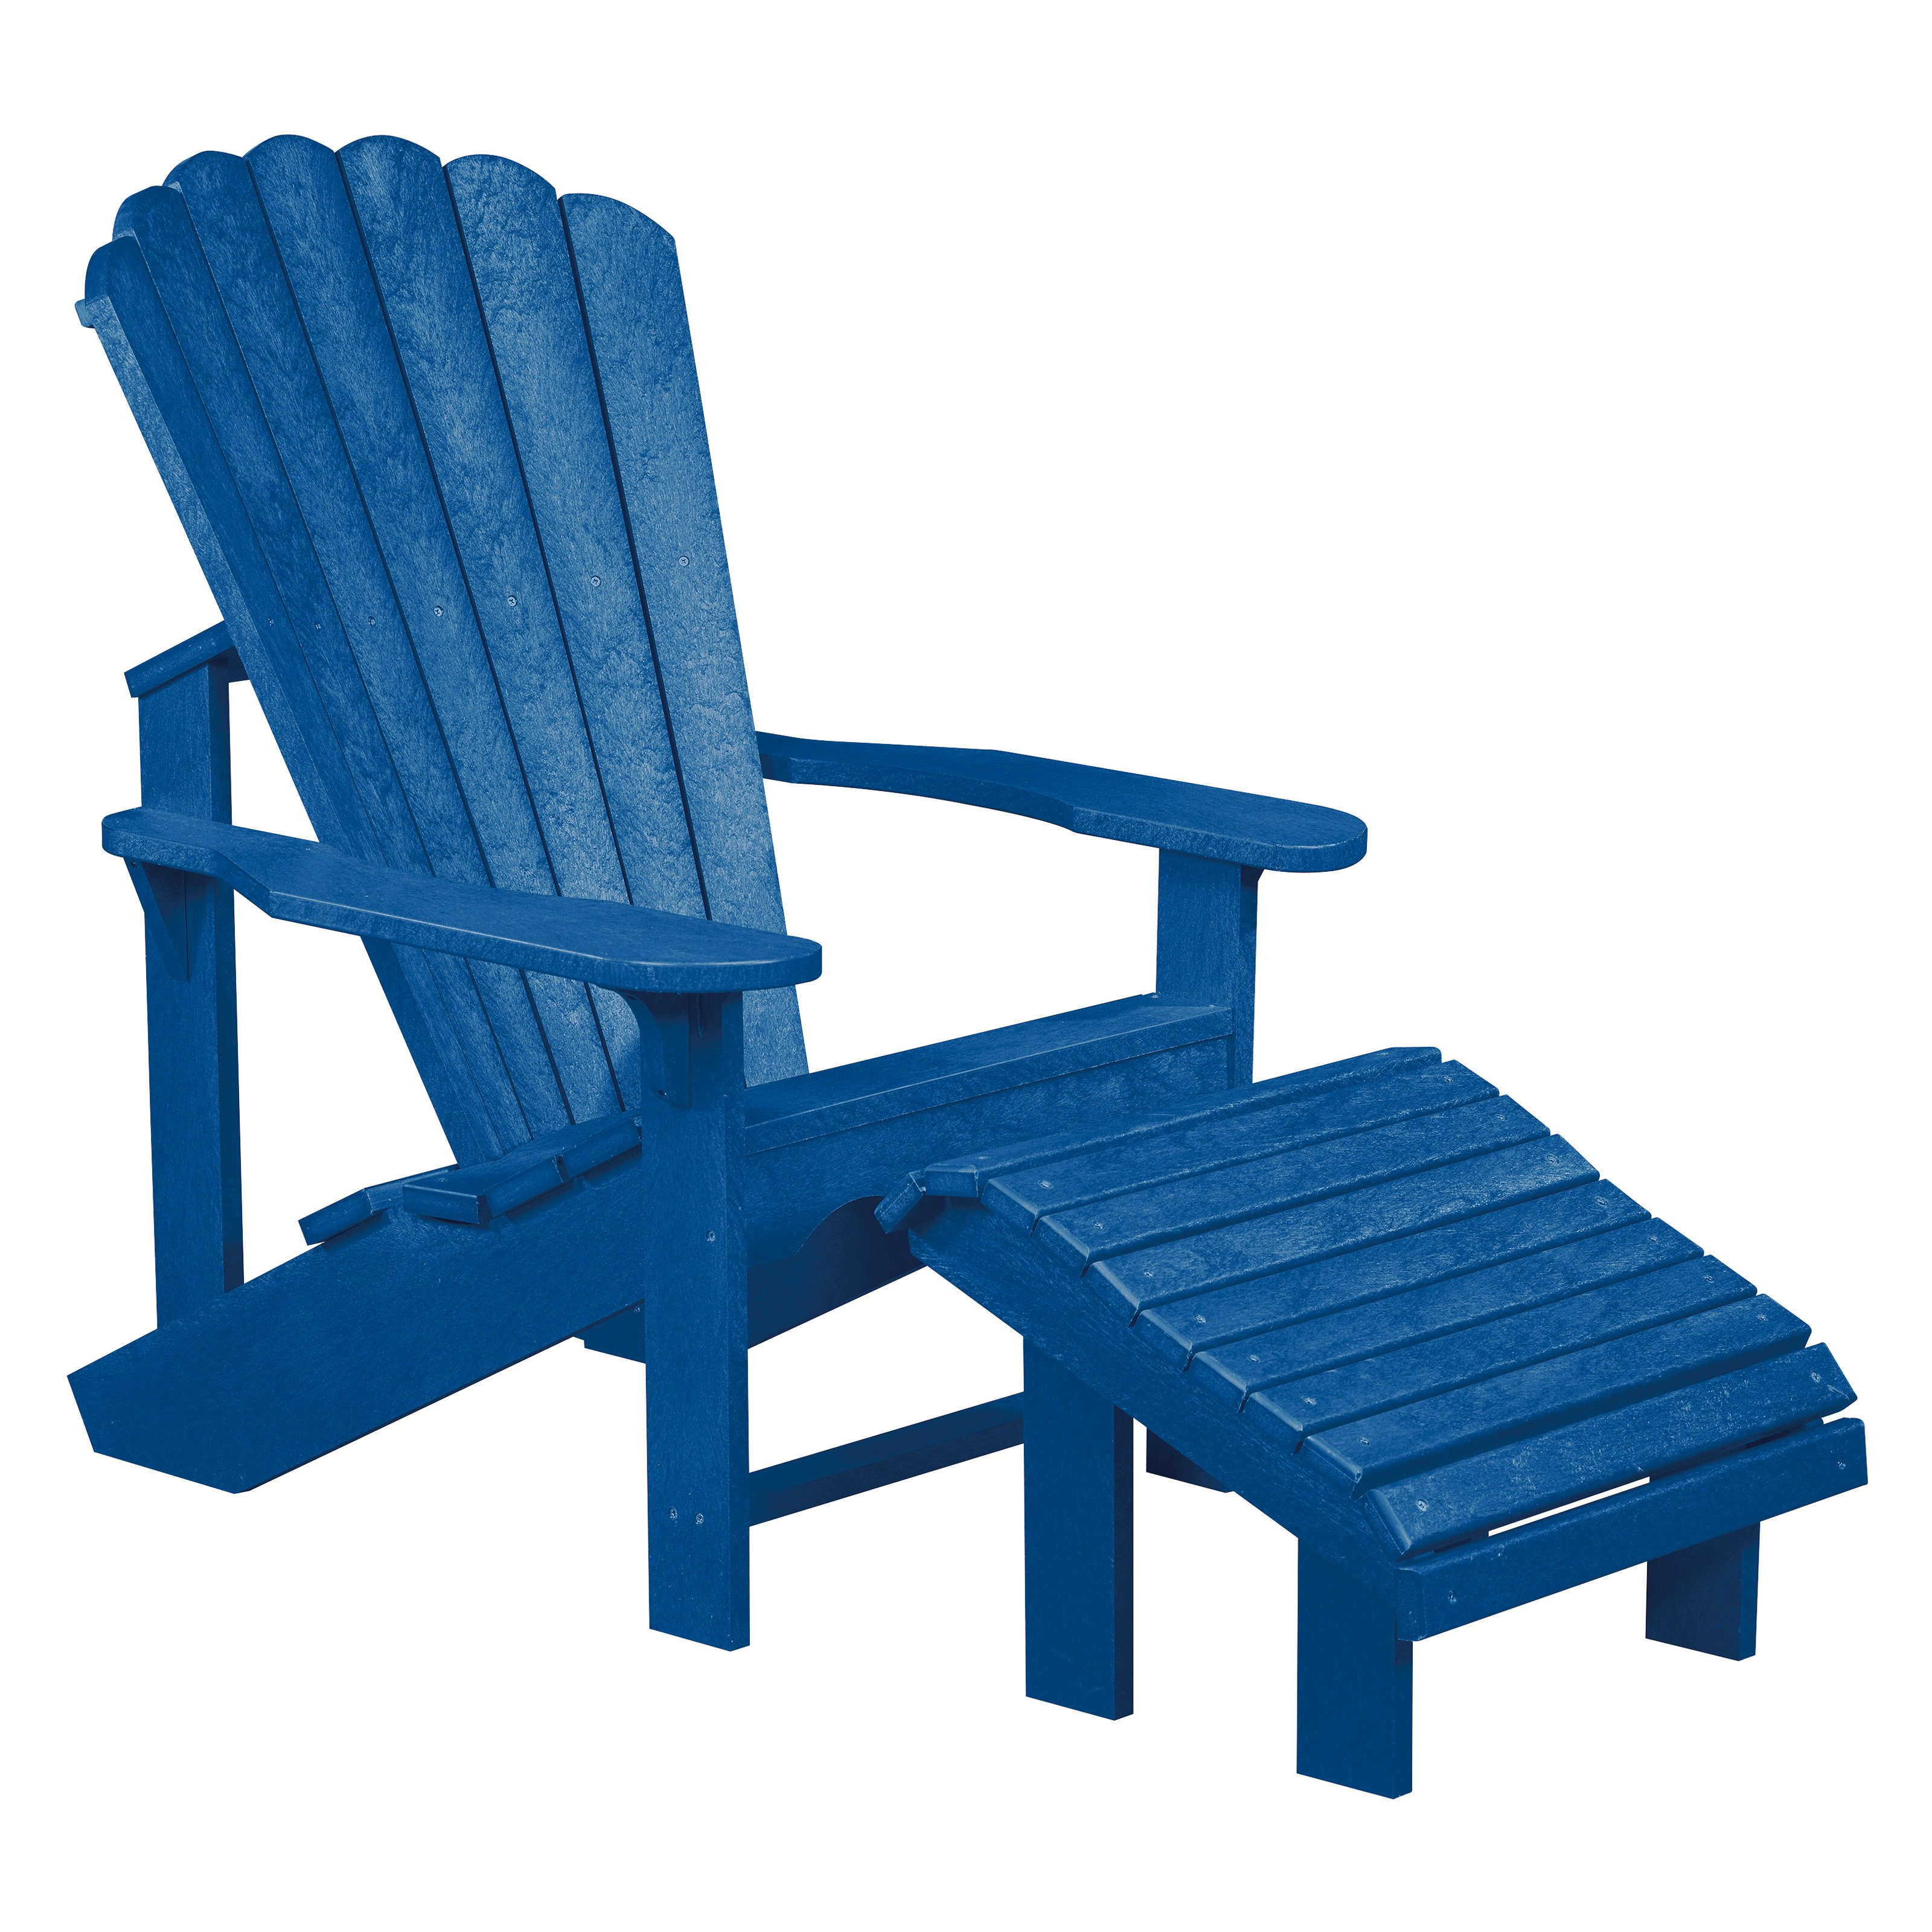 2 Piece Recycled Plastic Adirondack Chair with Footstool Set ...